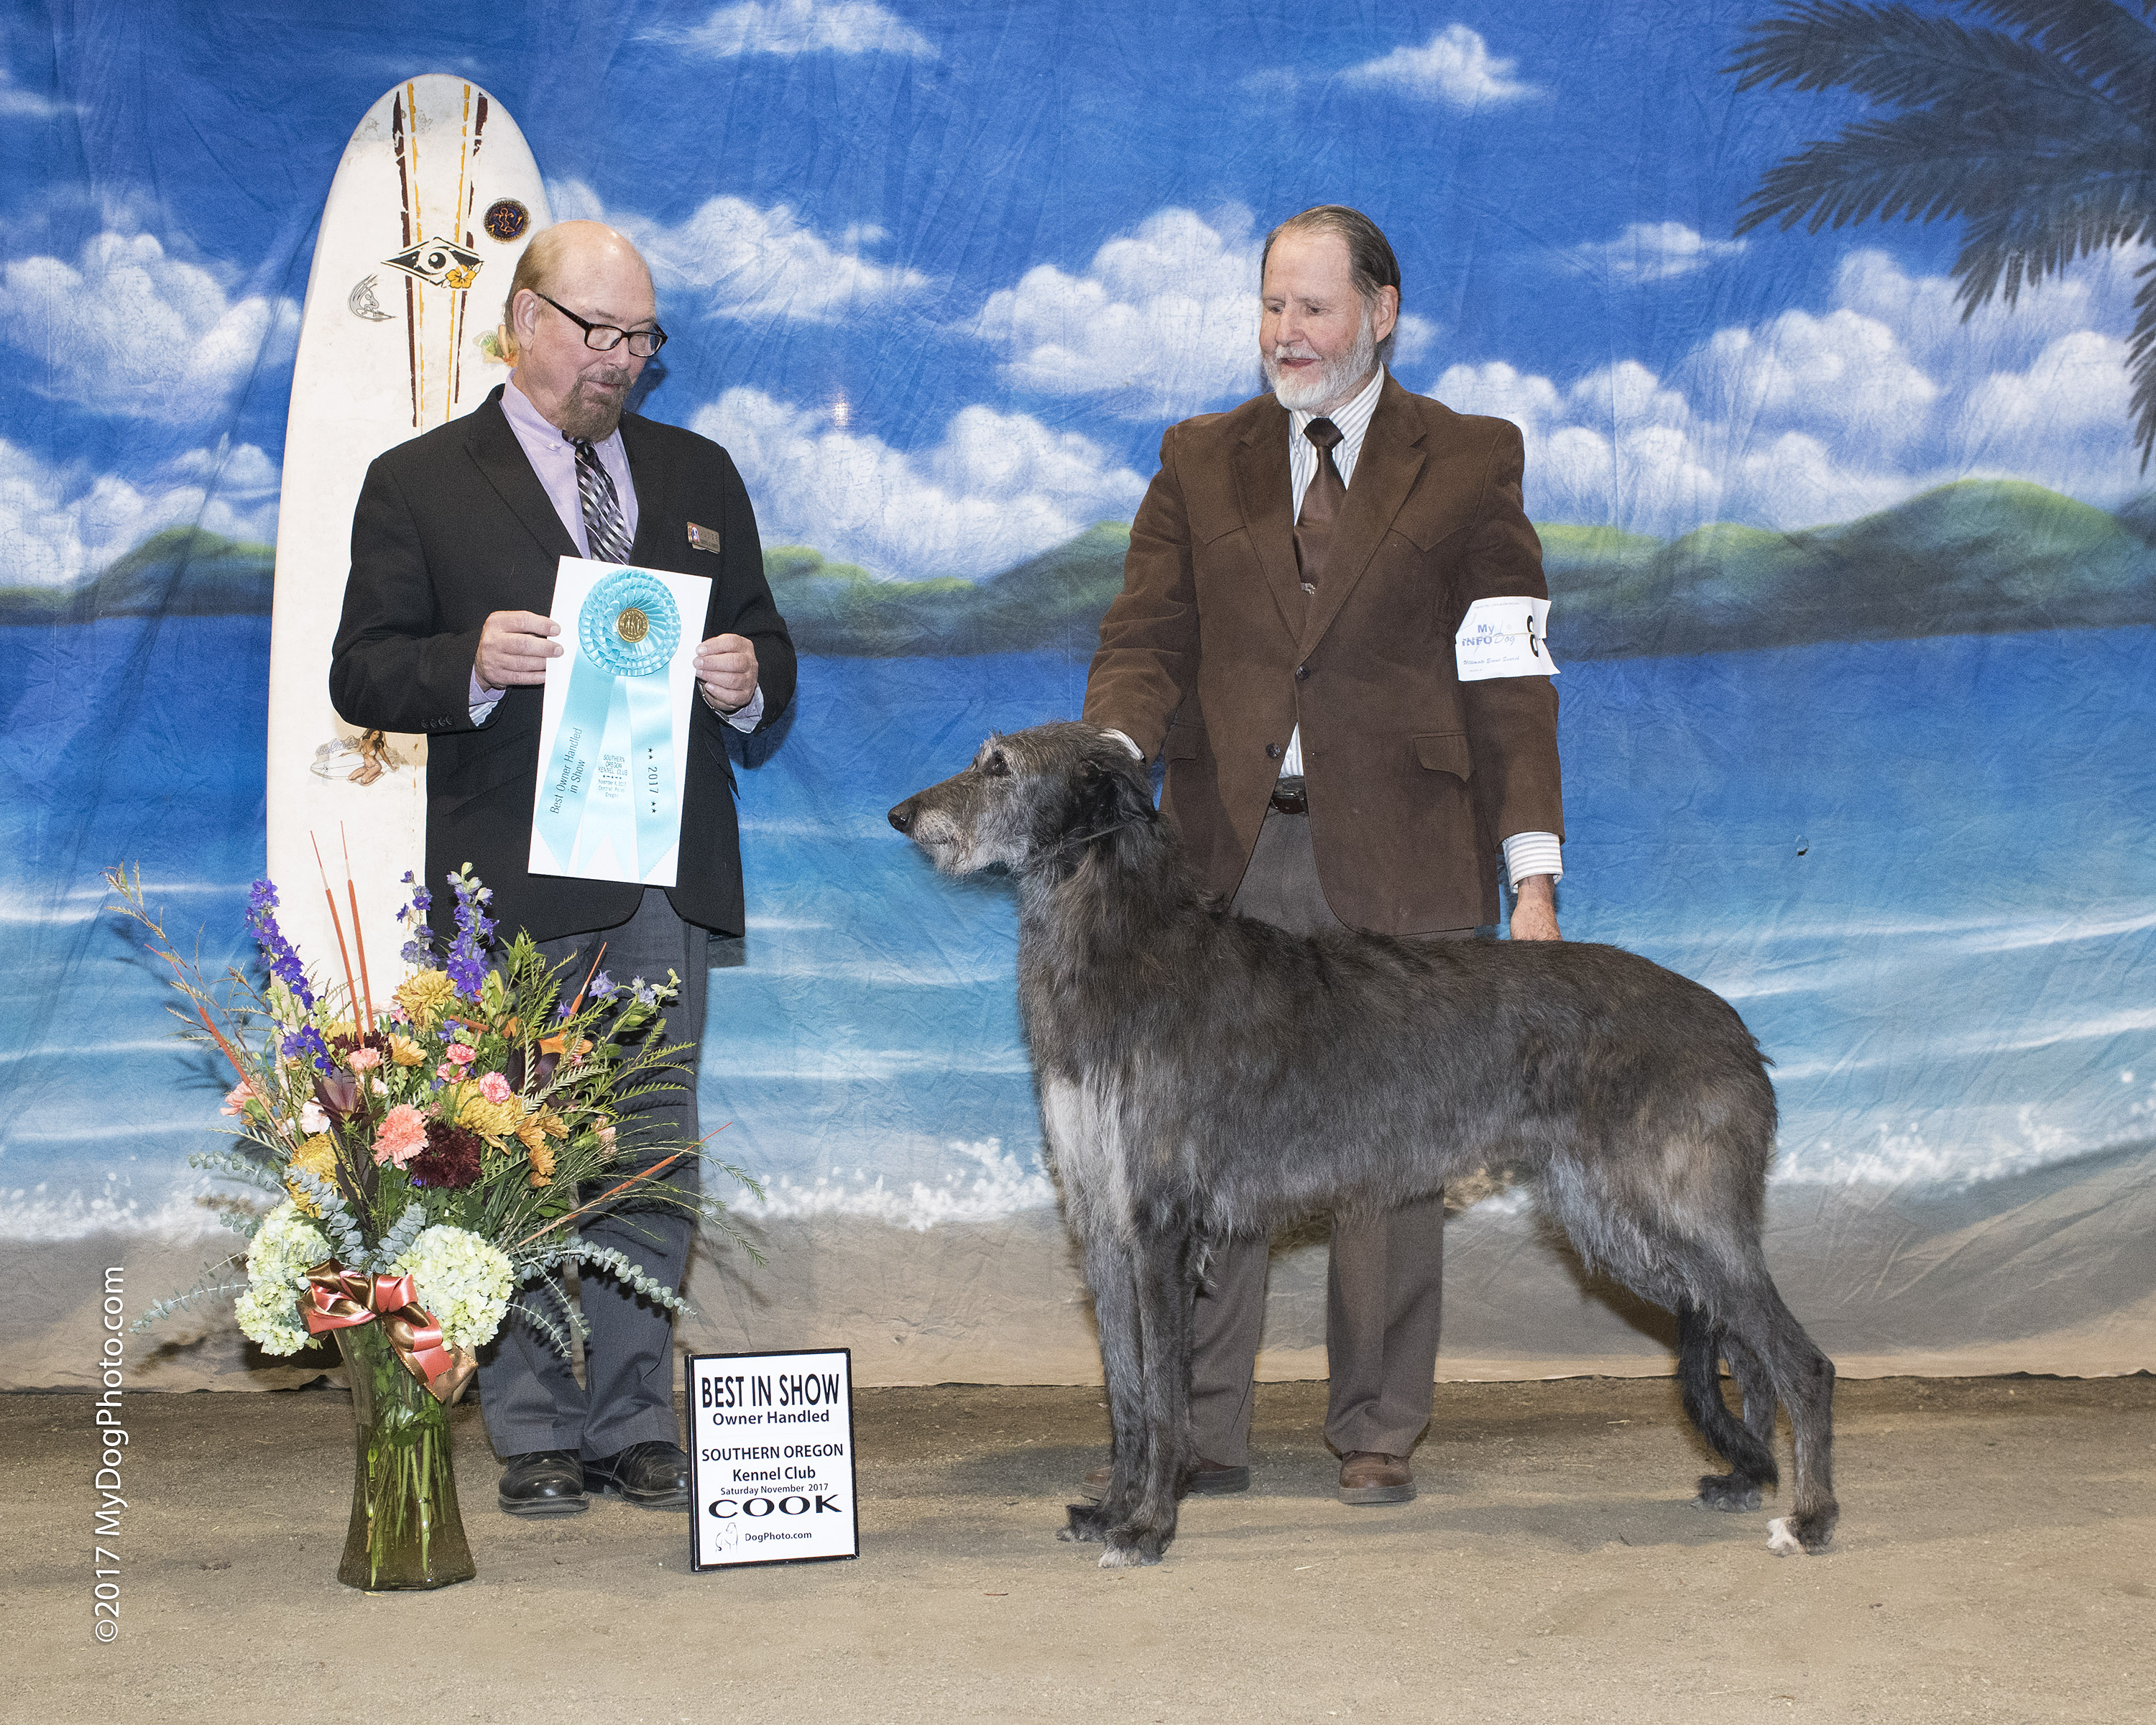 COOK graphy Dog Show graphy since 1969